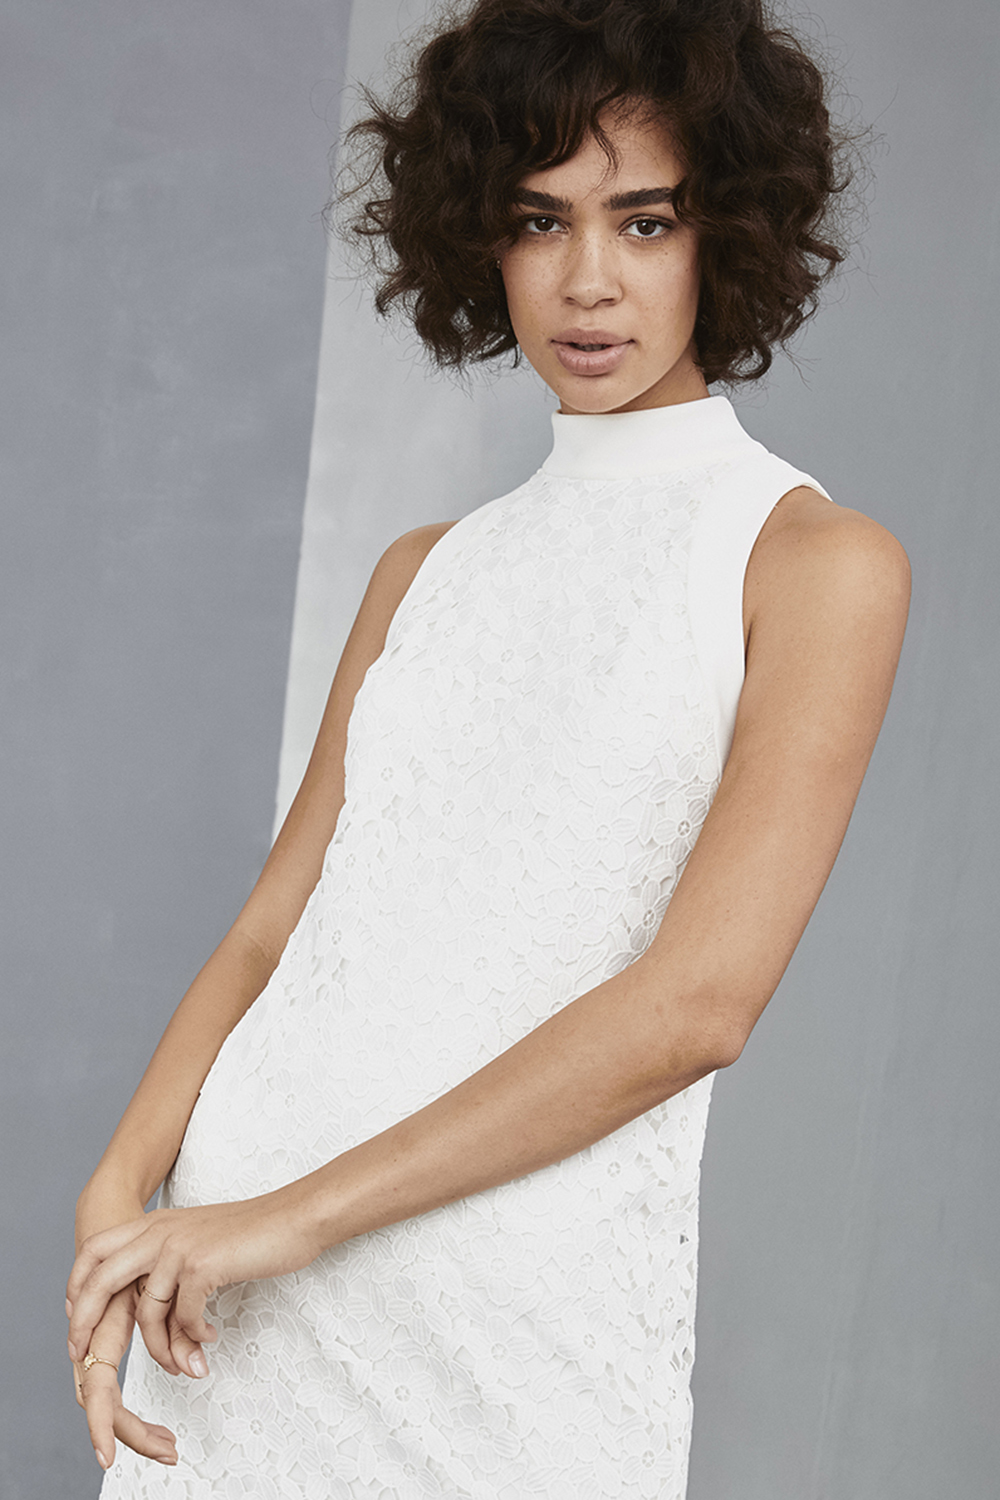 High neck detail of LW133 by Amsale Little White Dresses in daisy lace